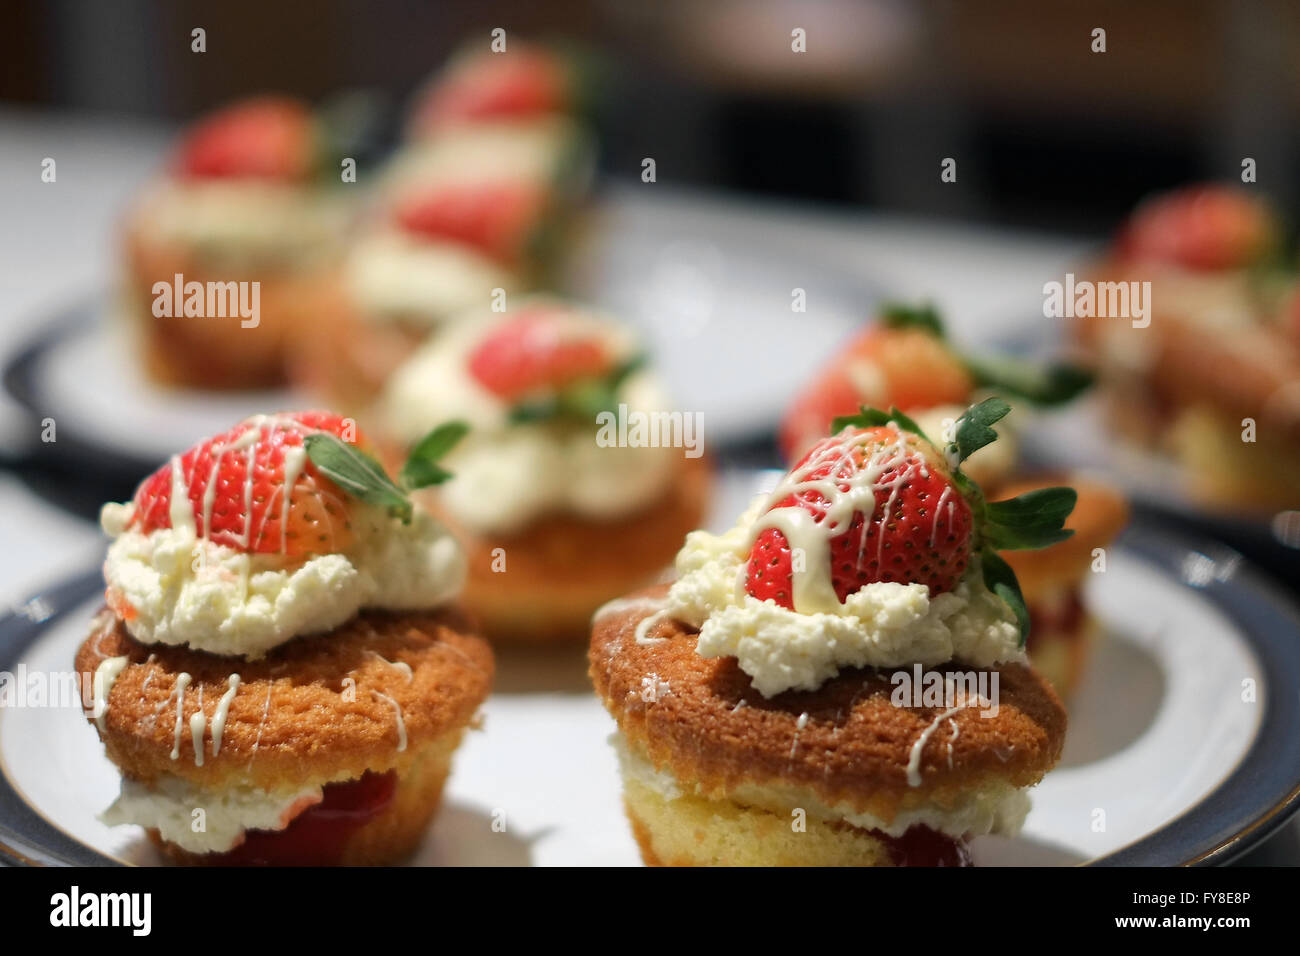 Homemade strawberry and cream cakes as part of a student baking project. - Stock Image